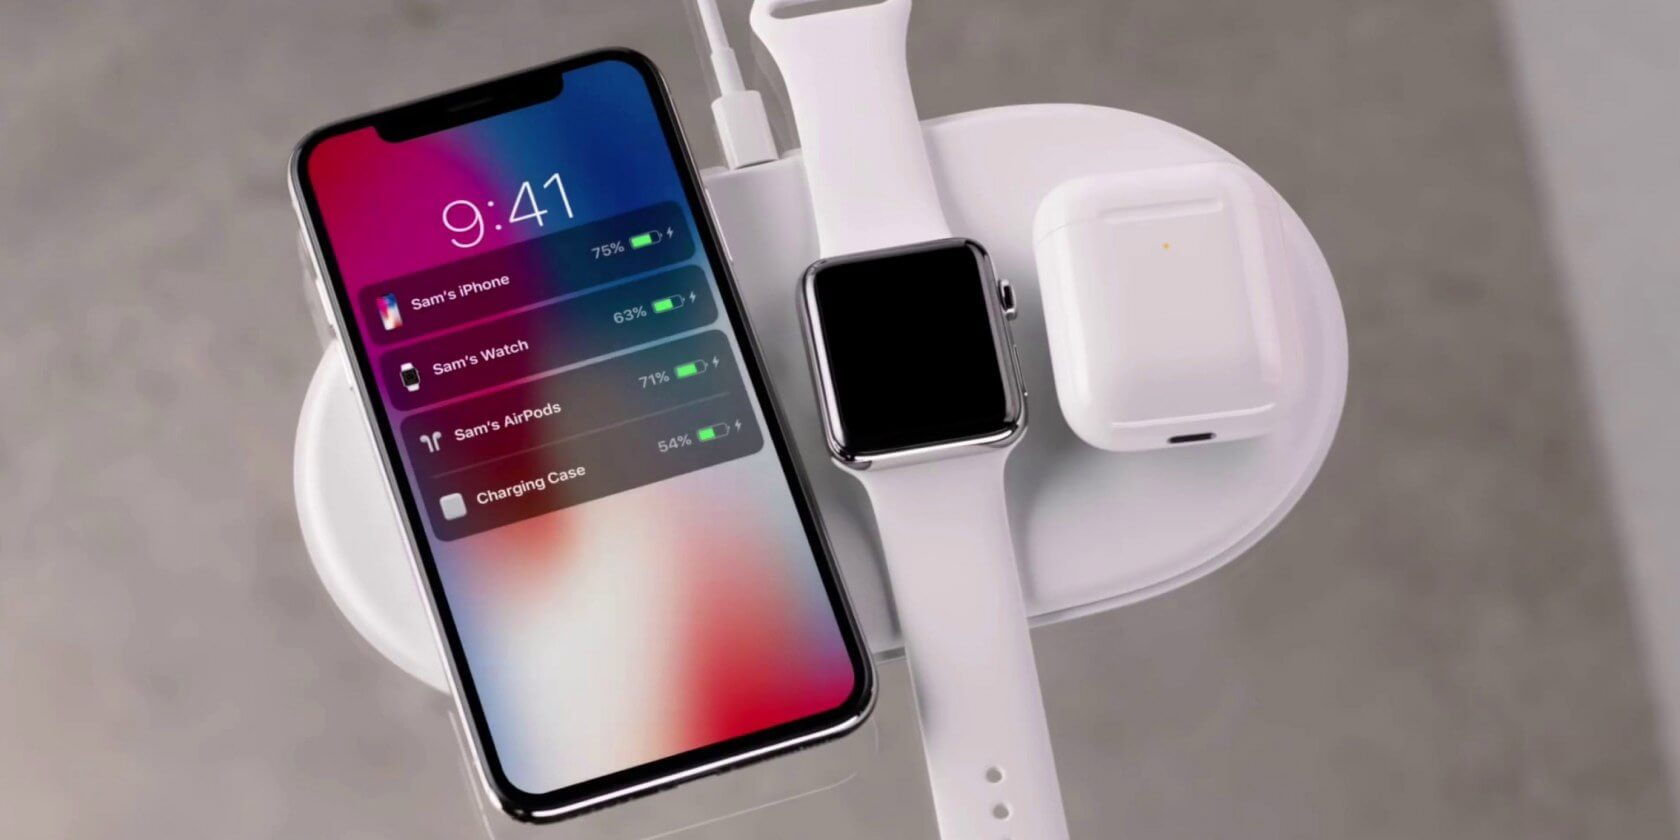 b5aff7ce153 Wireless charging is beginning to look like the future of charging tech,  but for now, current offerings are still in their infancy.